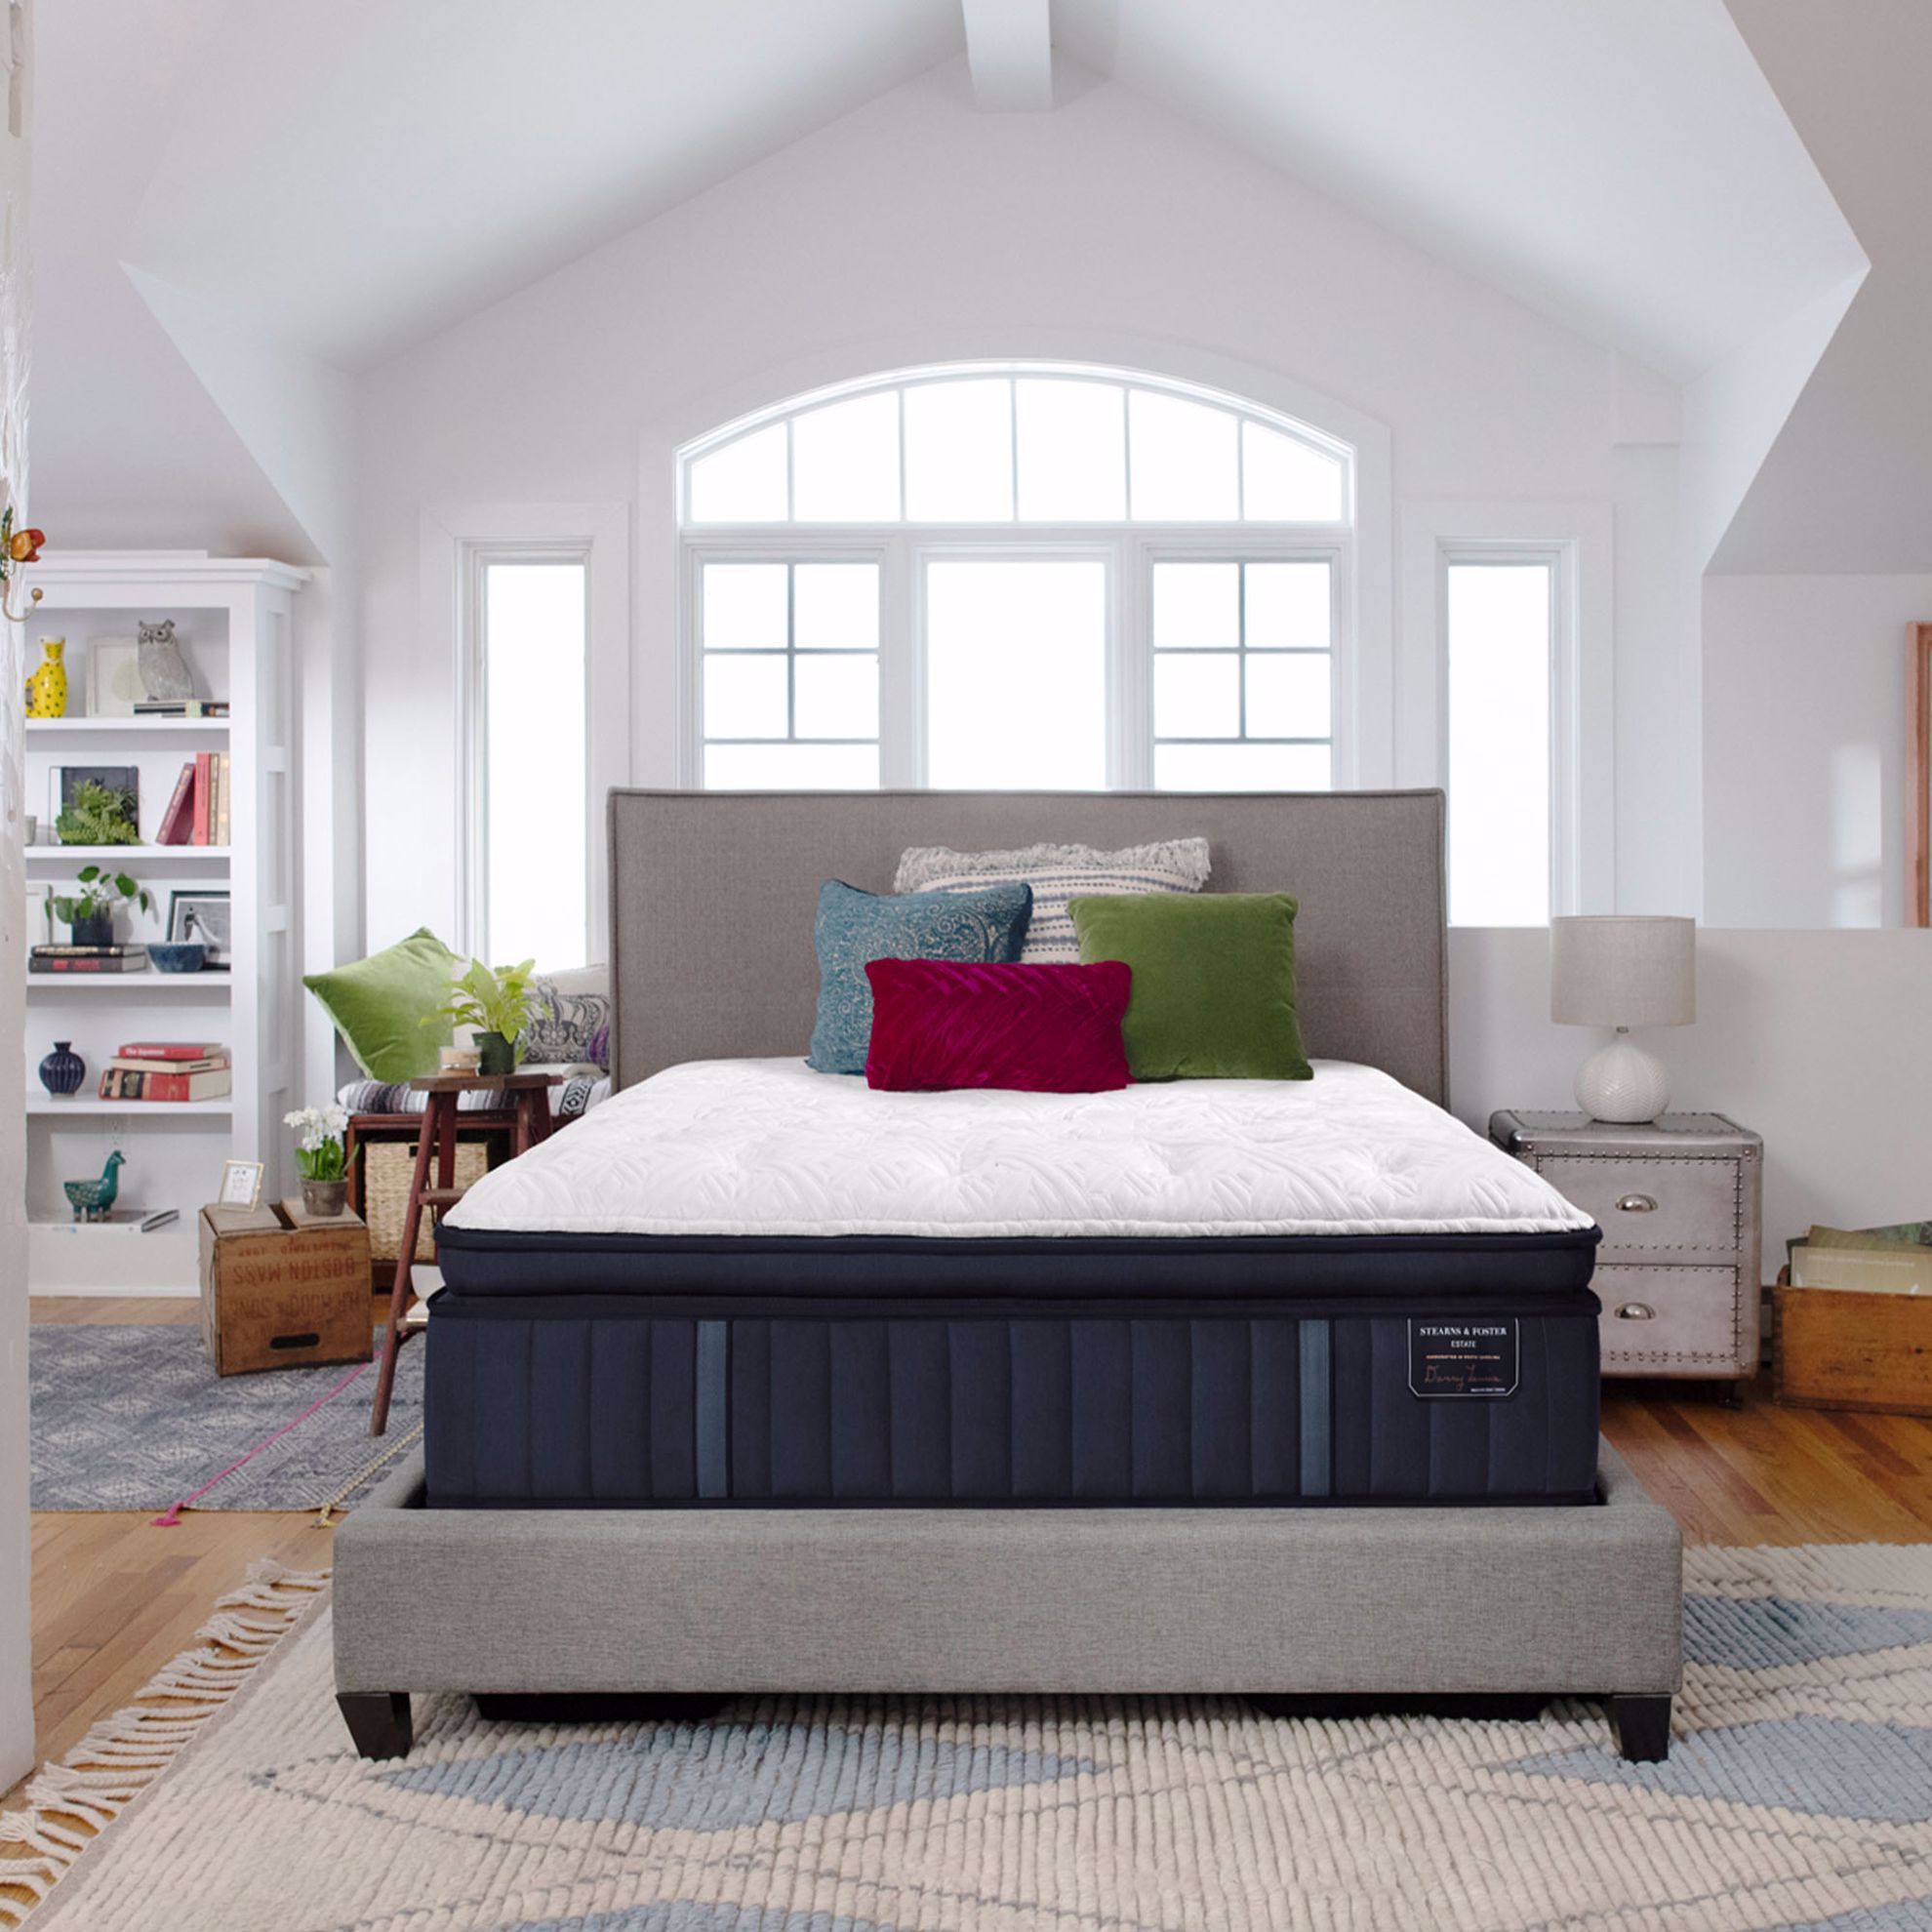 Picture of Stearns & Foster Rockwell Luxury Plush Euro Pillowtop California King Mattress